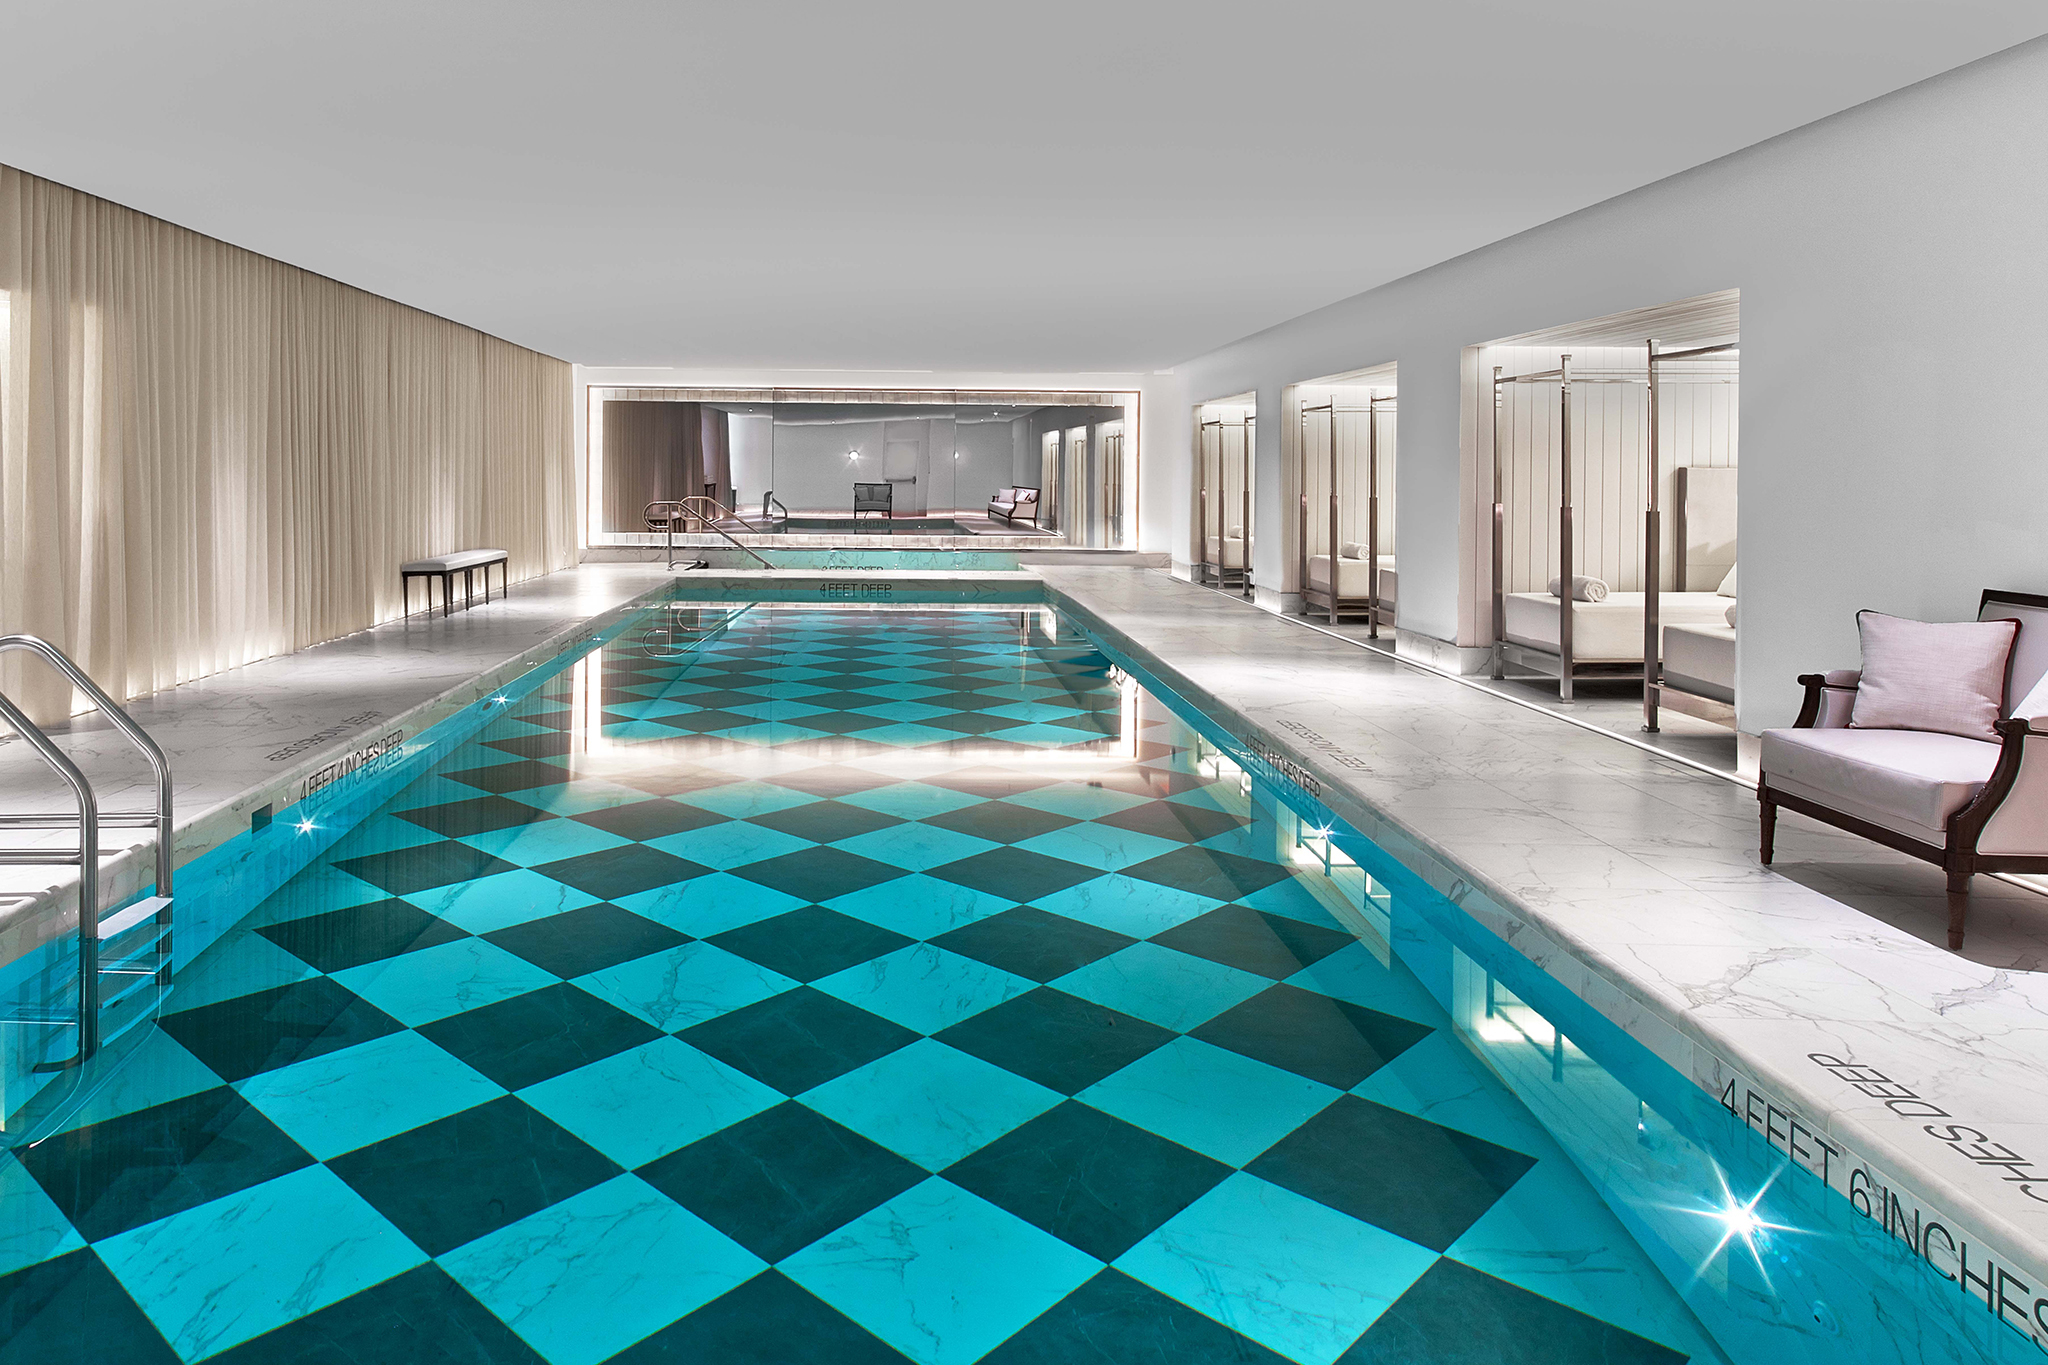 Best hotels with indoor pools in spas or on rooftops in nyc for New swimming pool